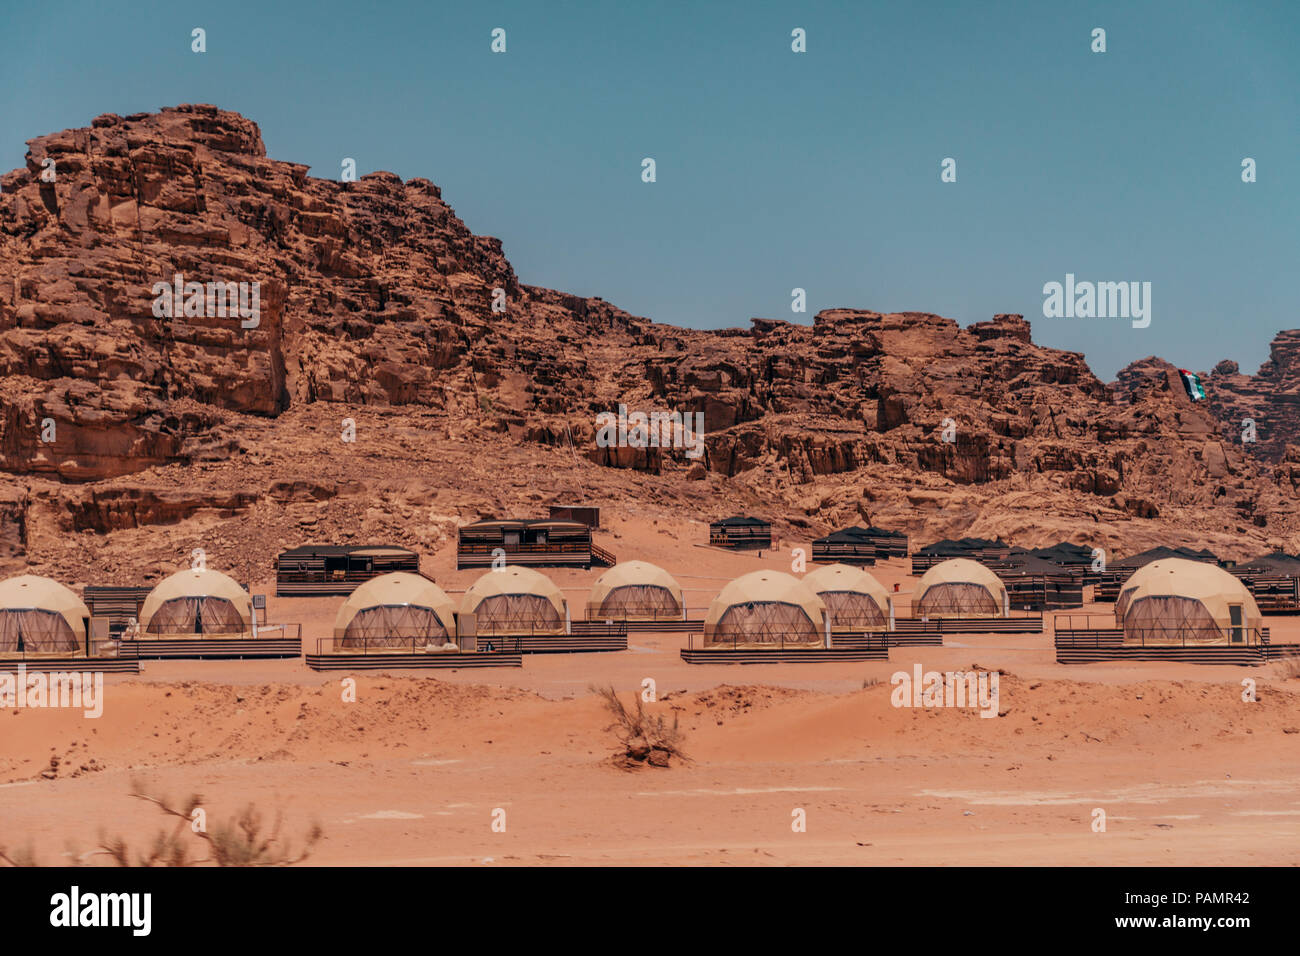 dome-like hotel rooms in the style of Ridley Scott's The Martian film clustered together at SunCity camp in Wadi Rum National Park, Jordan Stock Photo